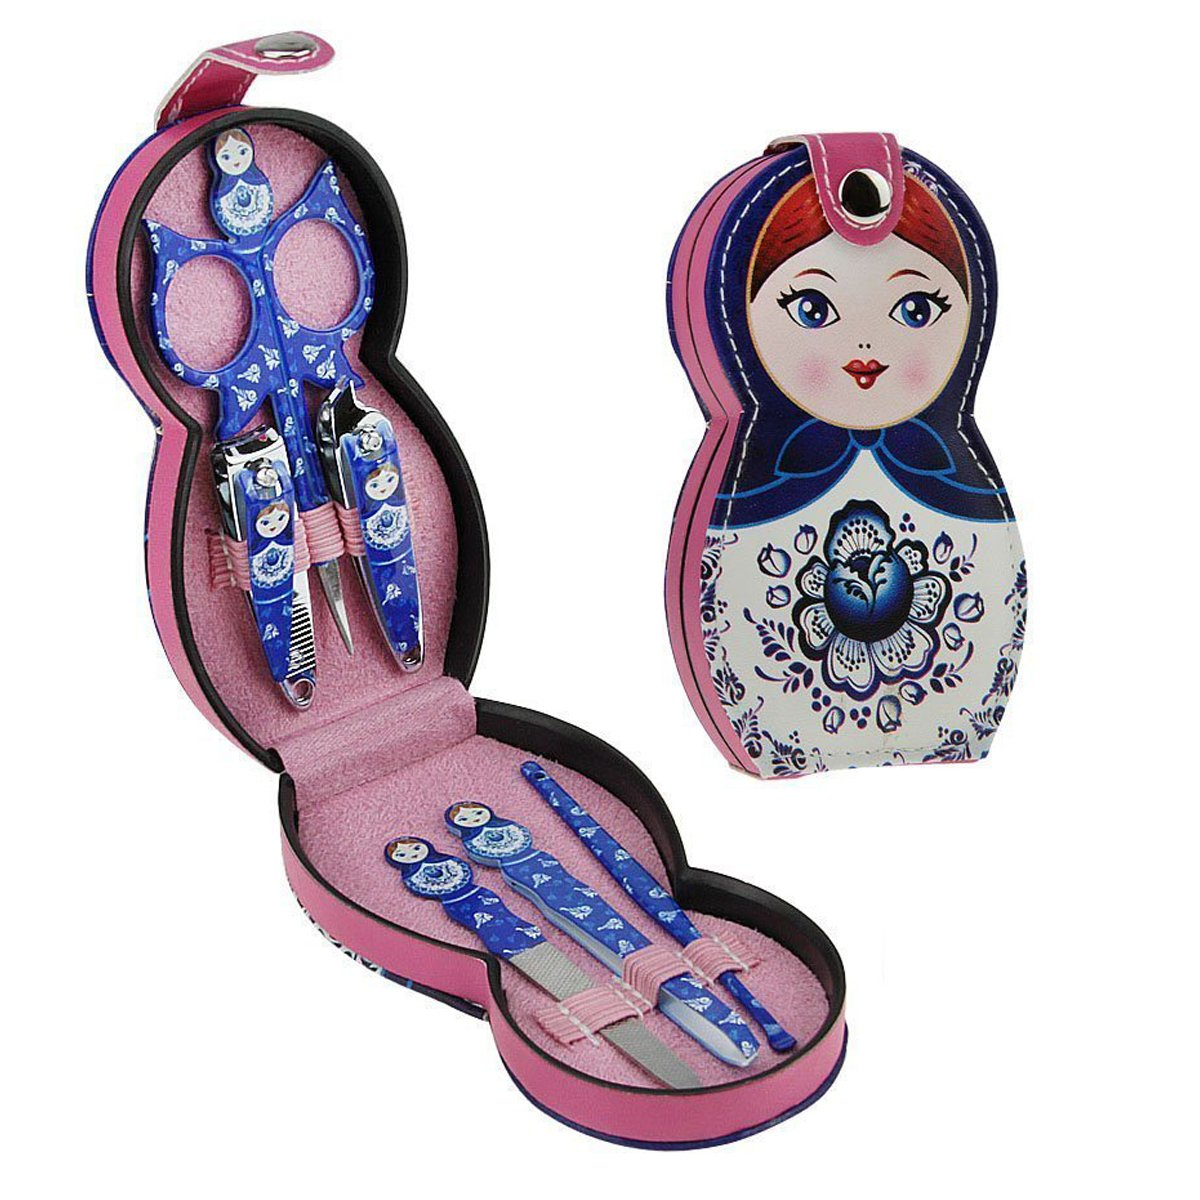 Aibearty Adorable Russian Doll Pattern Stainless Nail Clippers Set of 6Pcs, Professional Grooming Kit, Nail Tools with Luxurious Travel Case by Aibearty